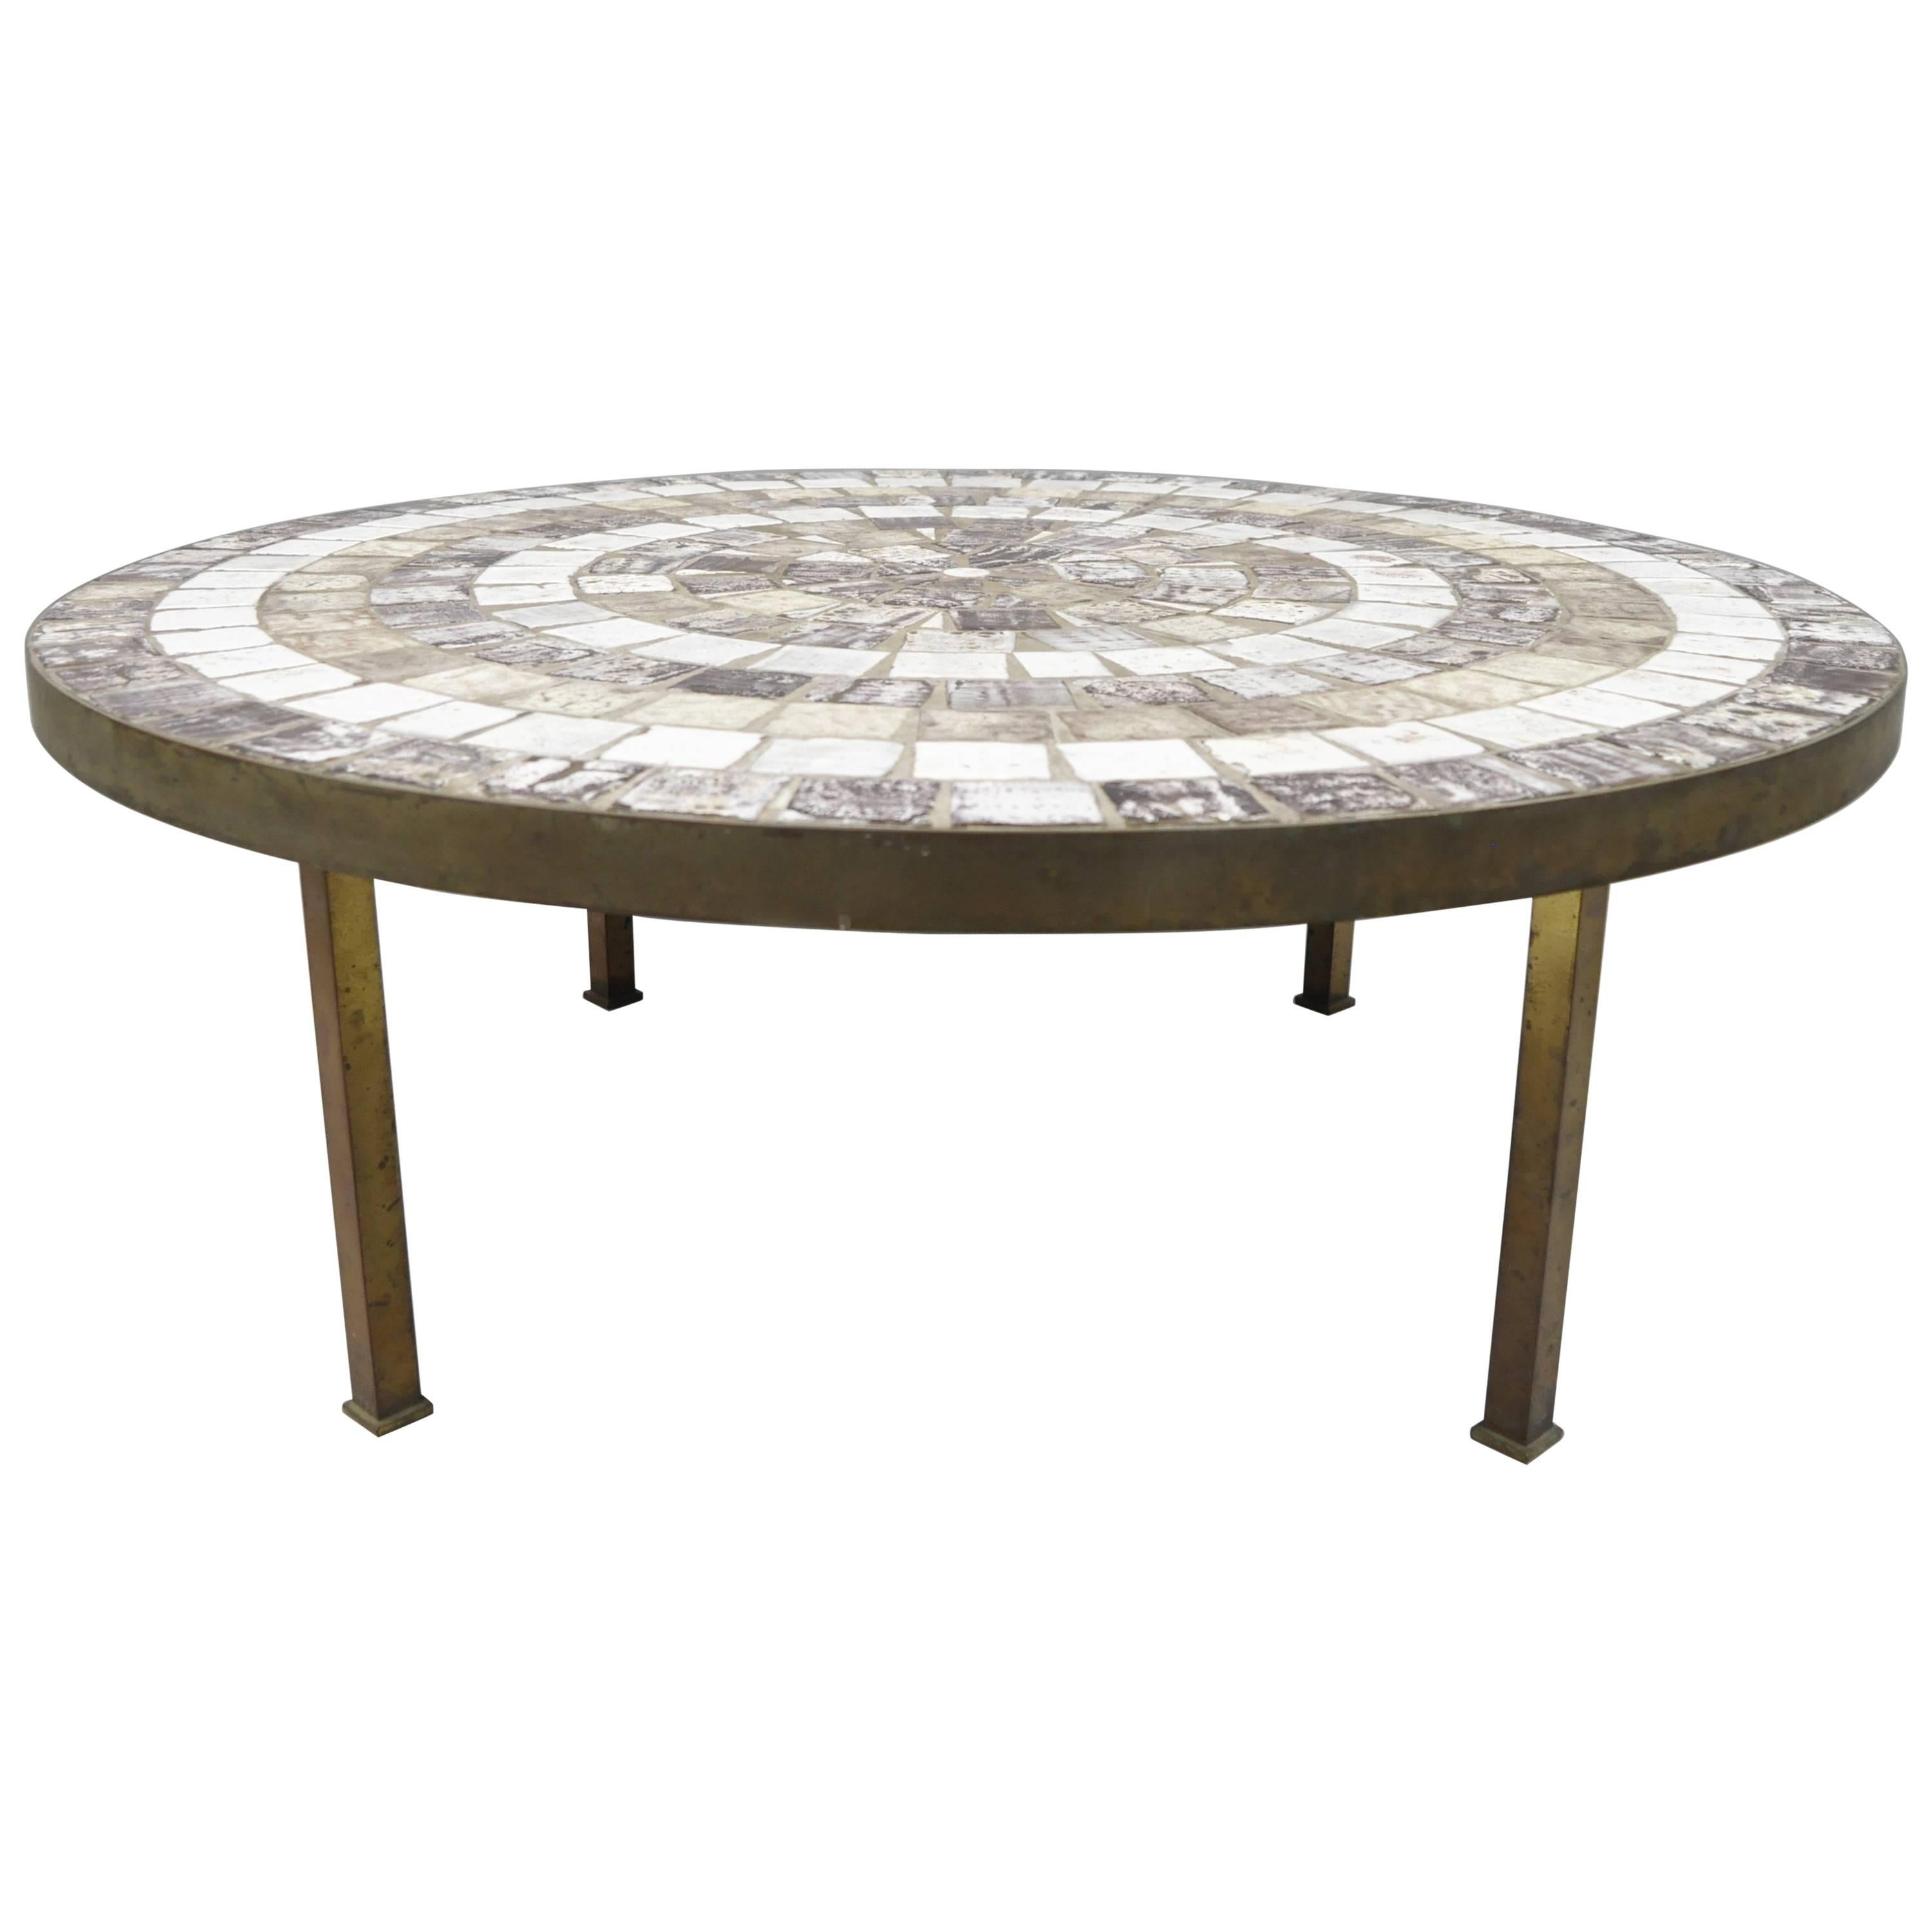 Bon Midcentury Mosaic Tile Top Bronze Base Round Coffee Table After Roger  Capron For Sale